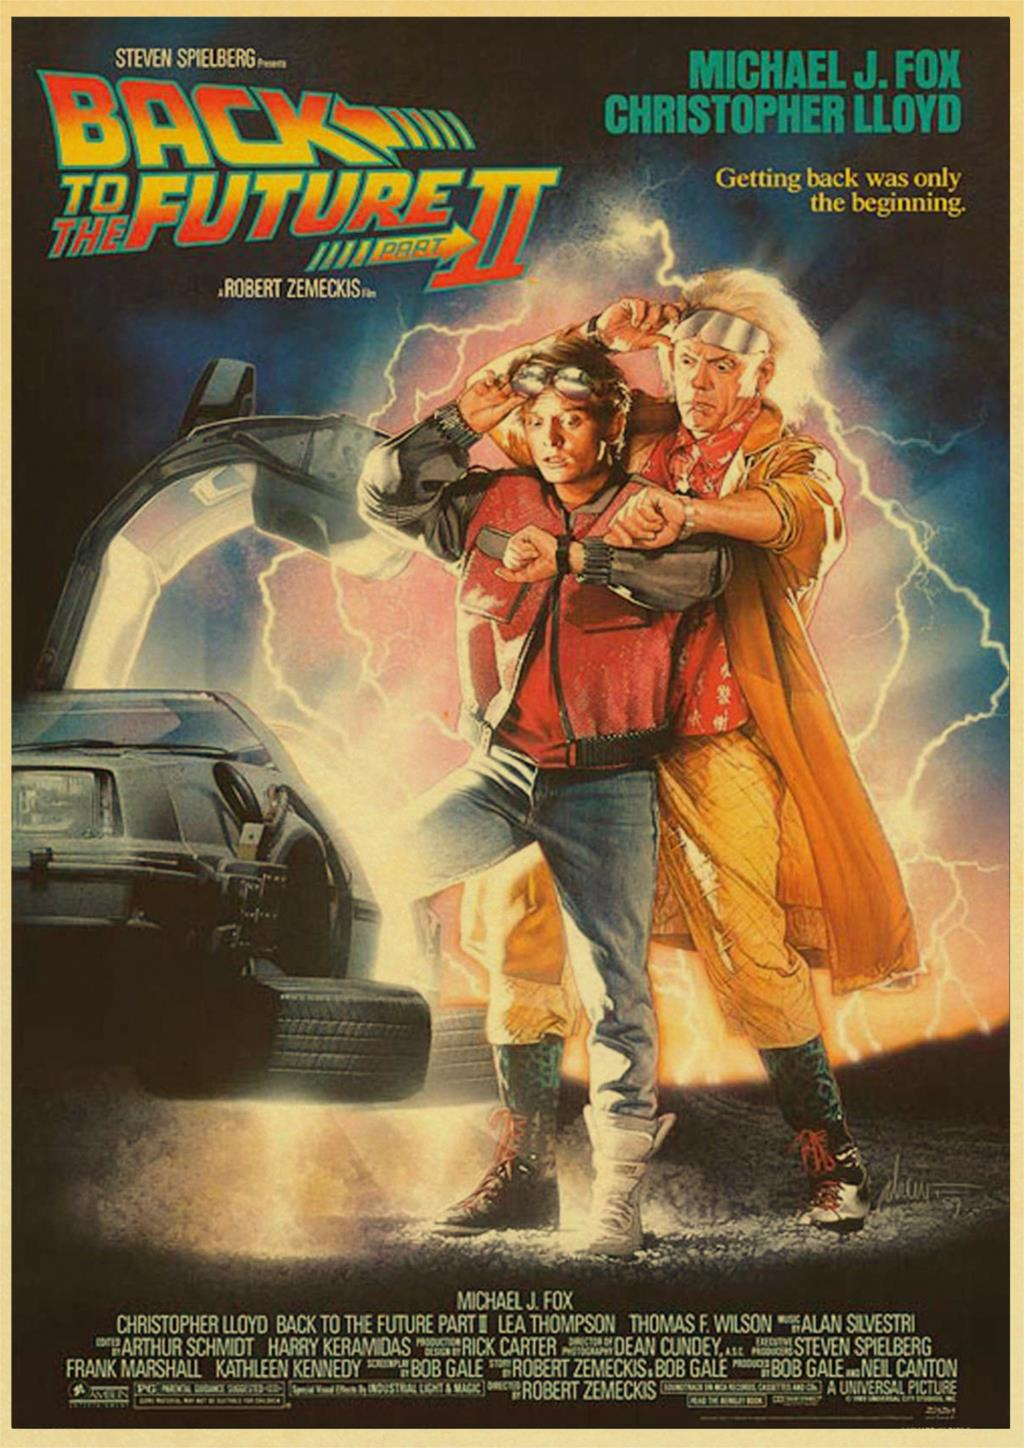 Classic Movie Back To The Future Vintage Posters For Home Bar Living Decor kraft Paper high Classic Movie Back To The Future Vintage Posters For Home/Bar/Living Decor kraft Paper high quality poster wall sticker